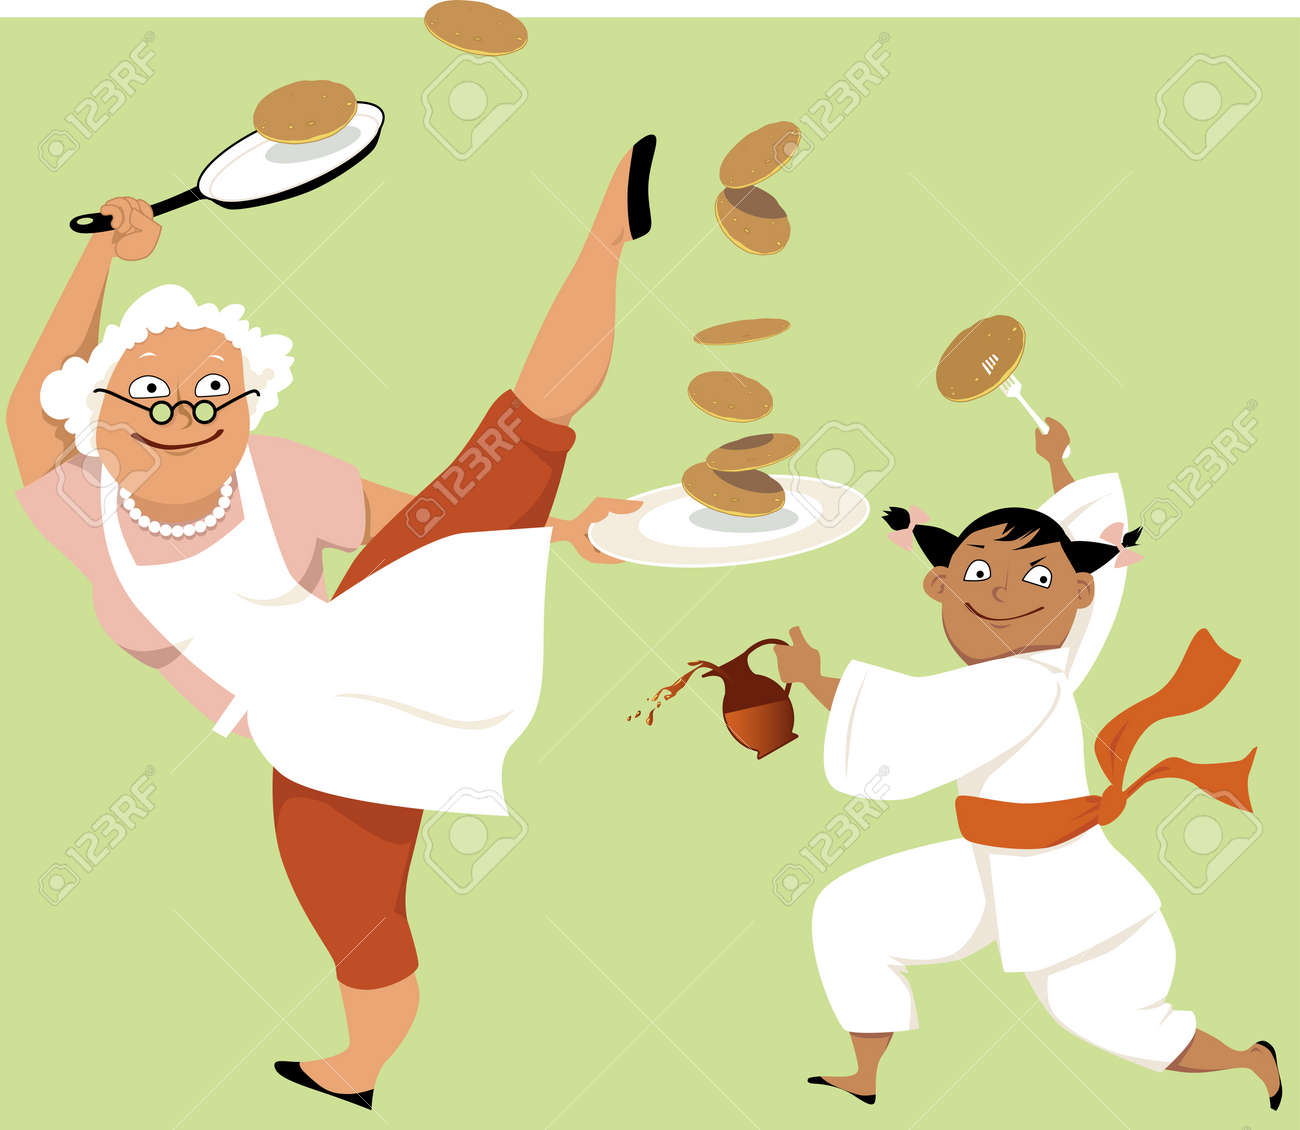 Image result for stylish grandmother in a cookery show cartoon